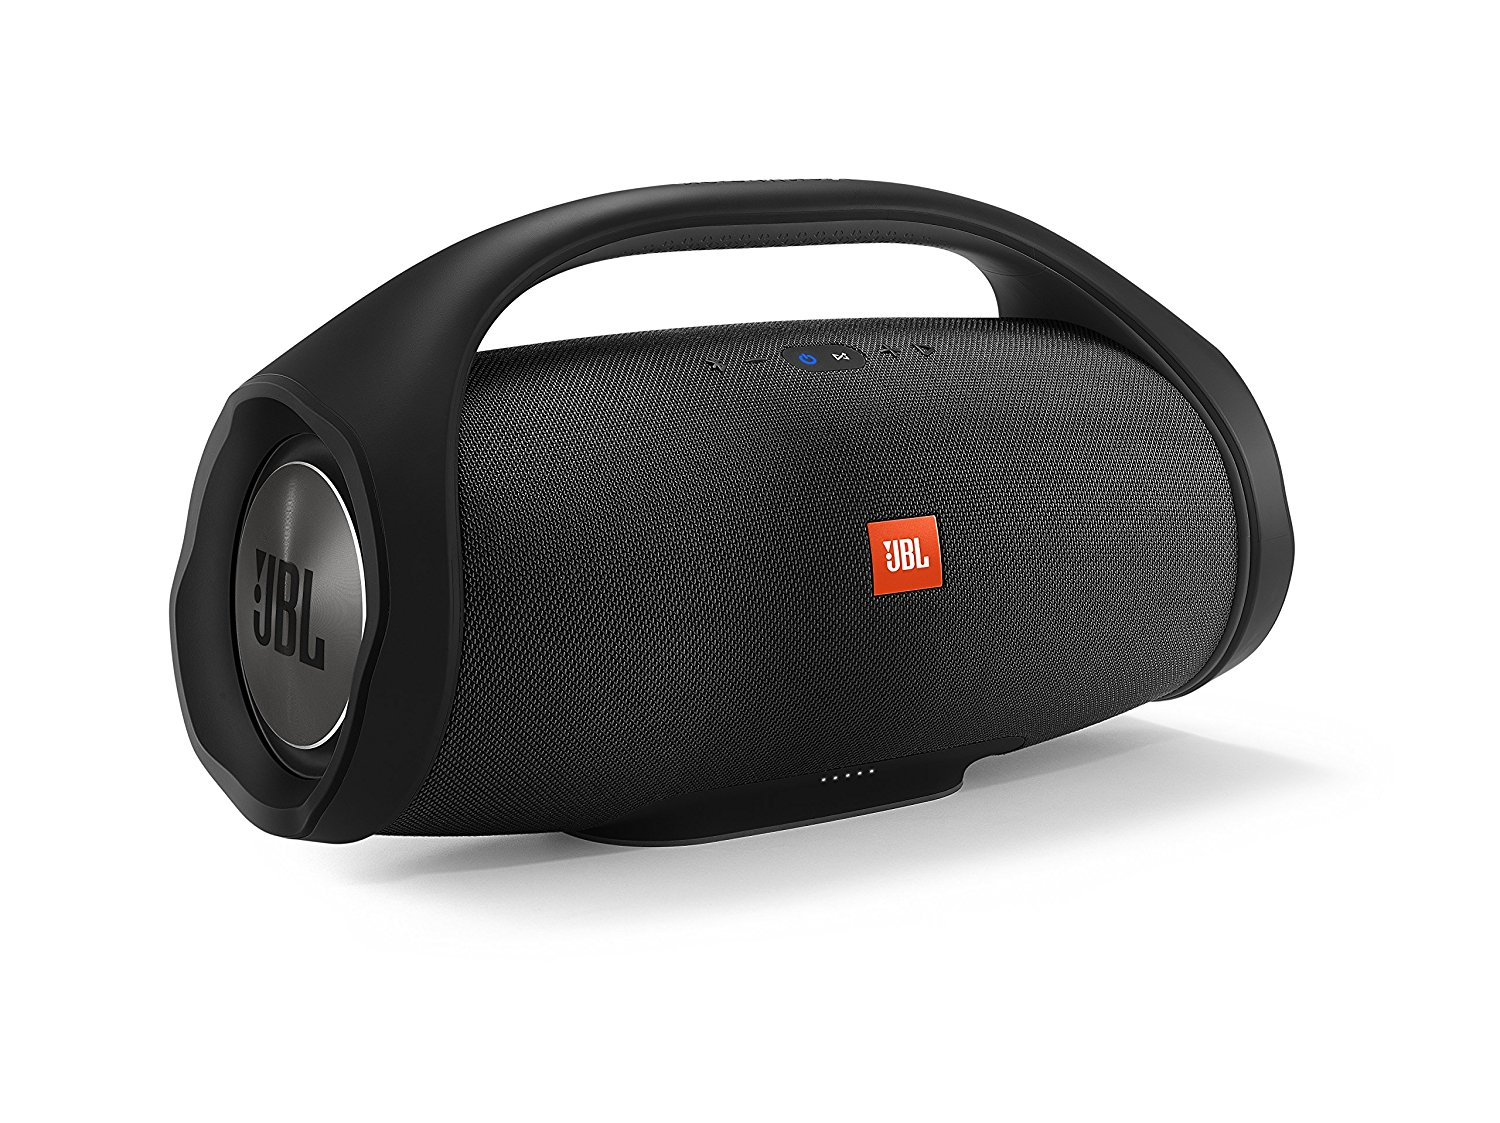 enceintes bluetooth jbl comparatif et avis mon enceinte bluetooth. Black Bedroom Furniture Sets. Home Design Ideas